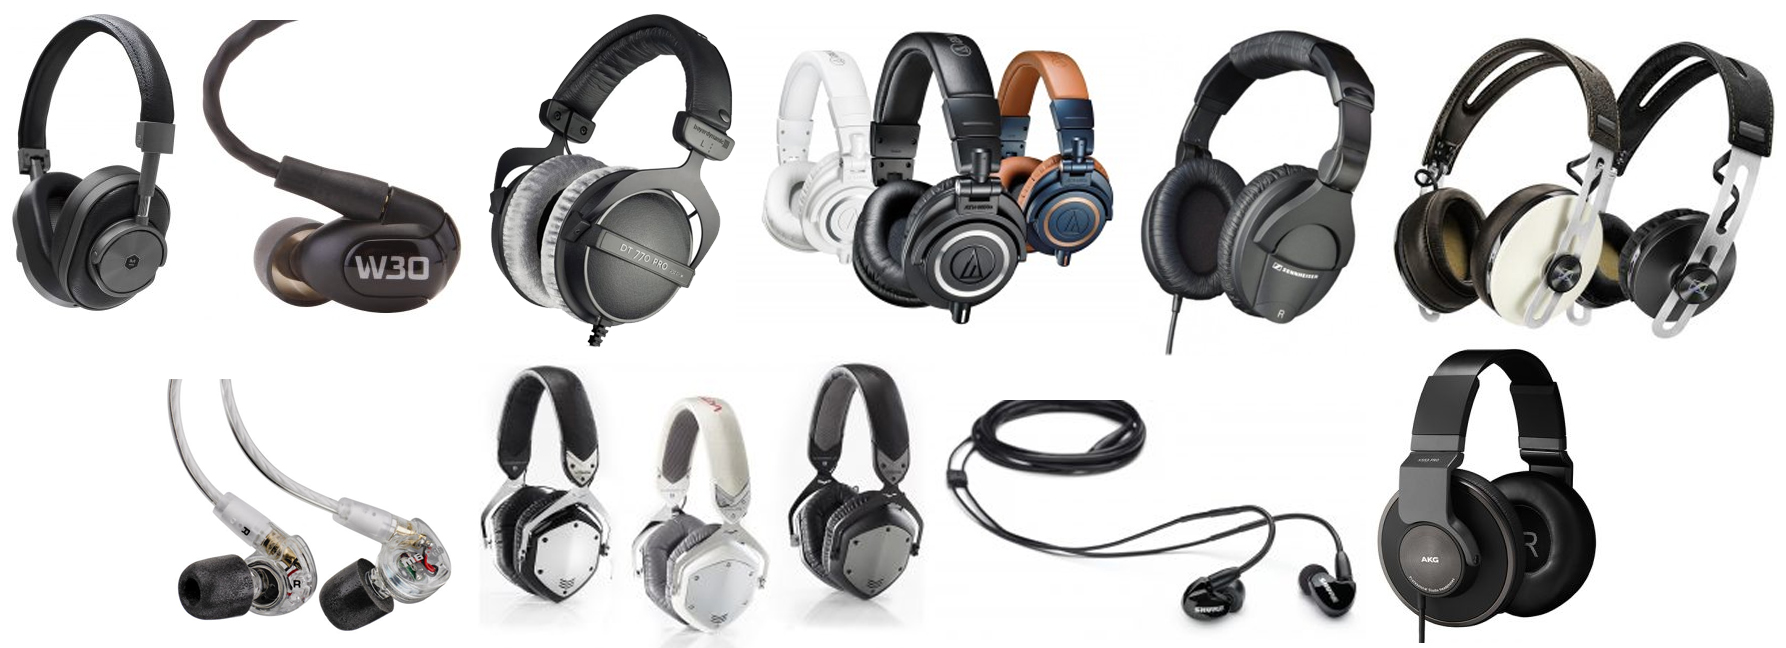 We found some of our favorite headphones with noise isolating capabilities